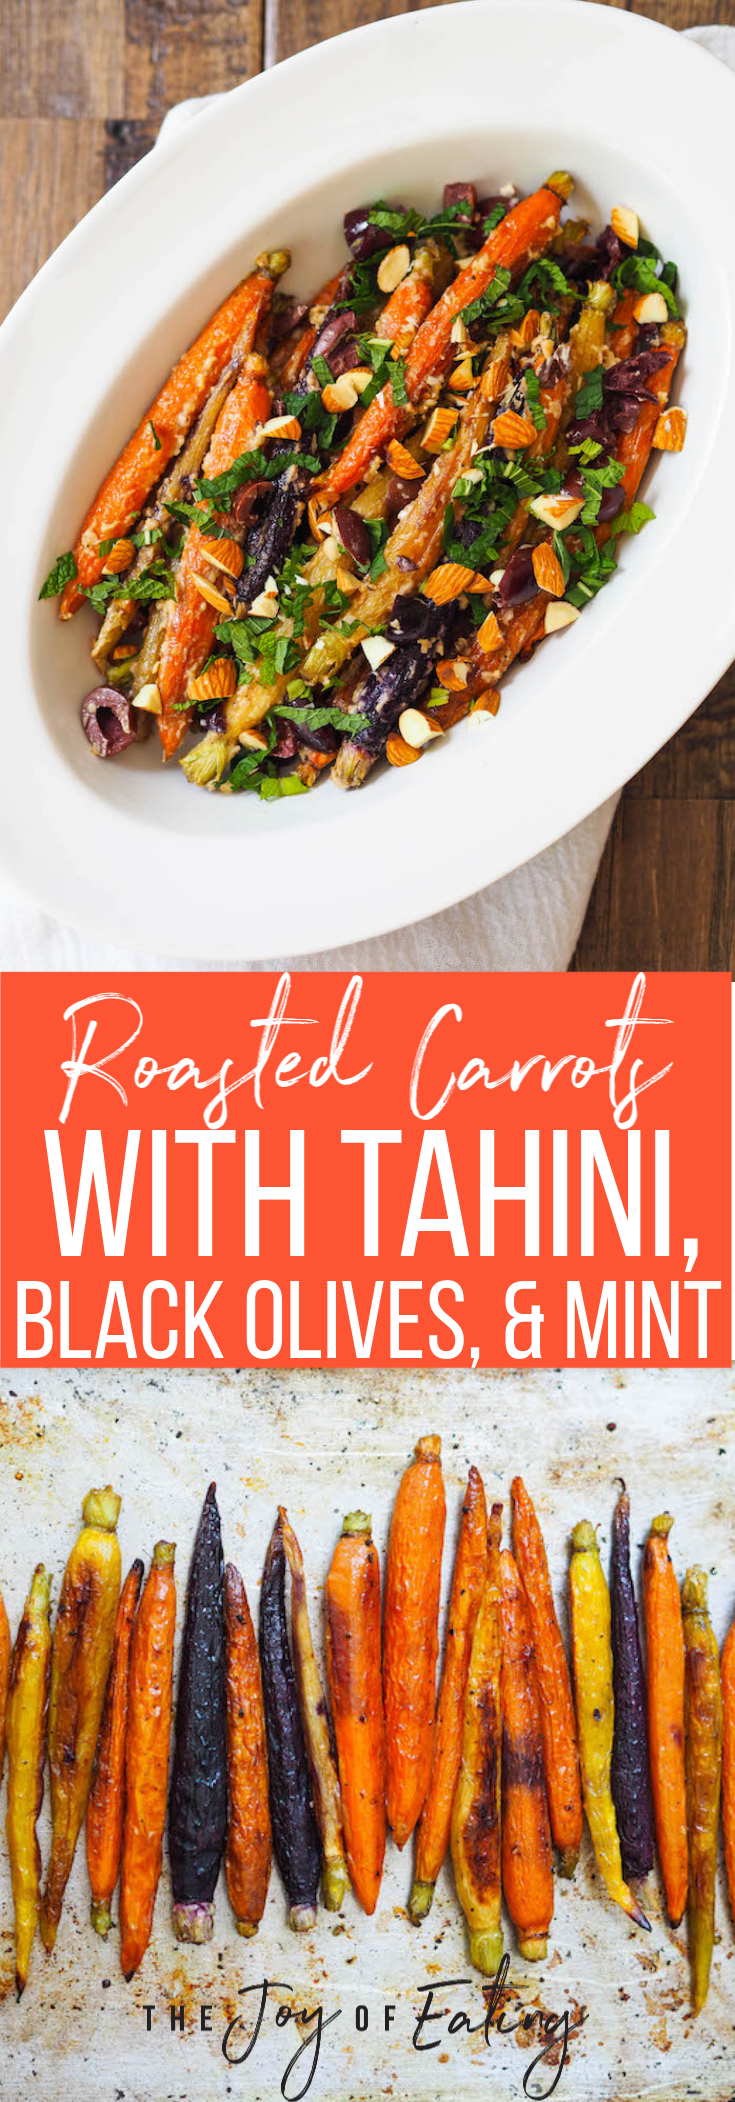 Roasted Carrots with Tahini, Black Olives and Mint! It's an easy side dish that's packed with flavor! #sidedish #carrots #roastedvegetables #tahini #healthyrecipe